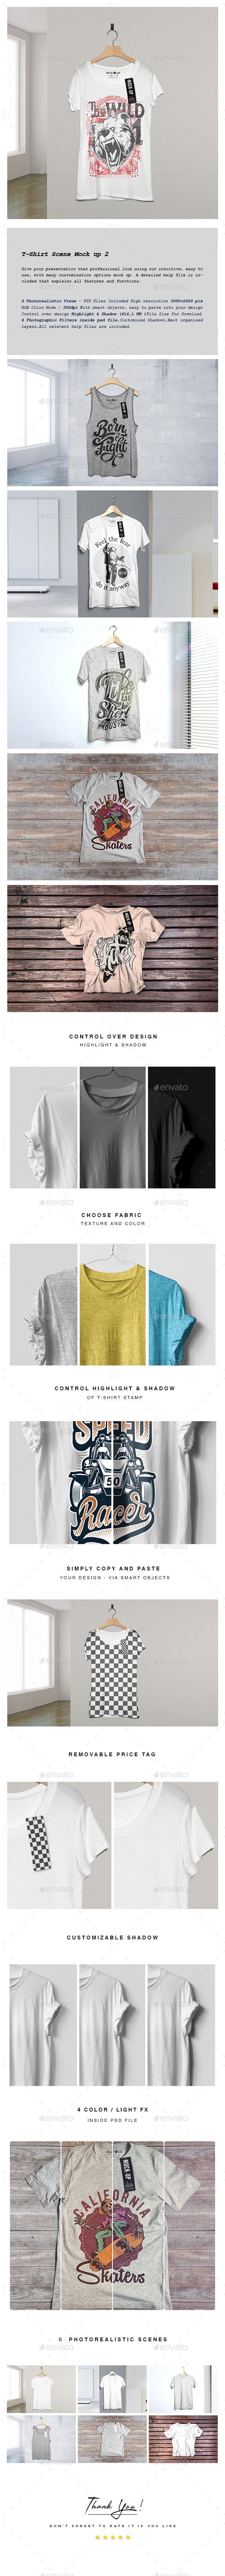 GraphicRiver T-Shirt Scene Mock-up 2 20549917